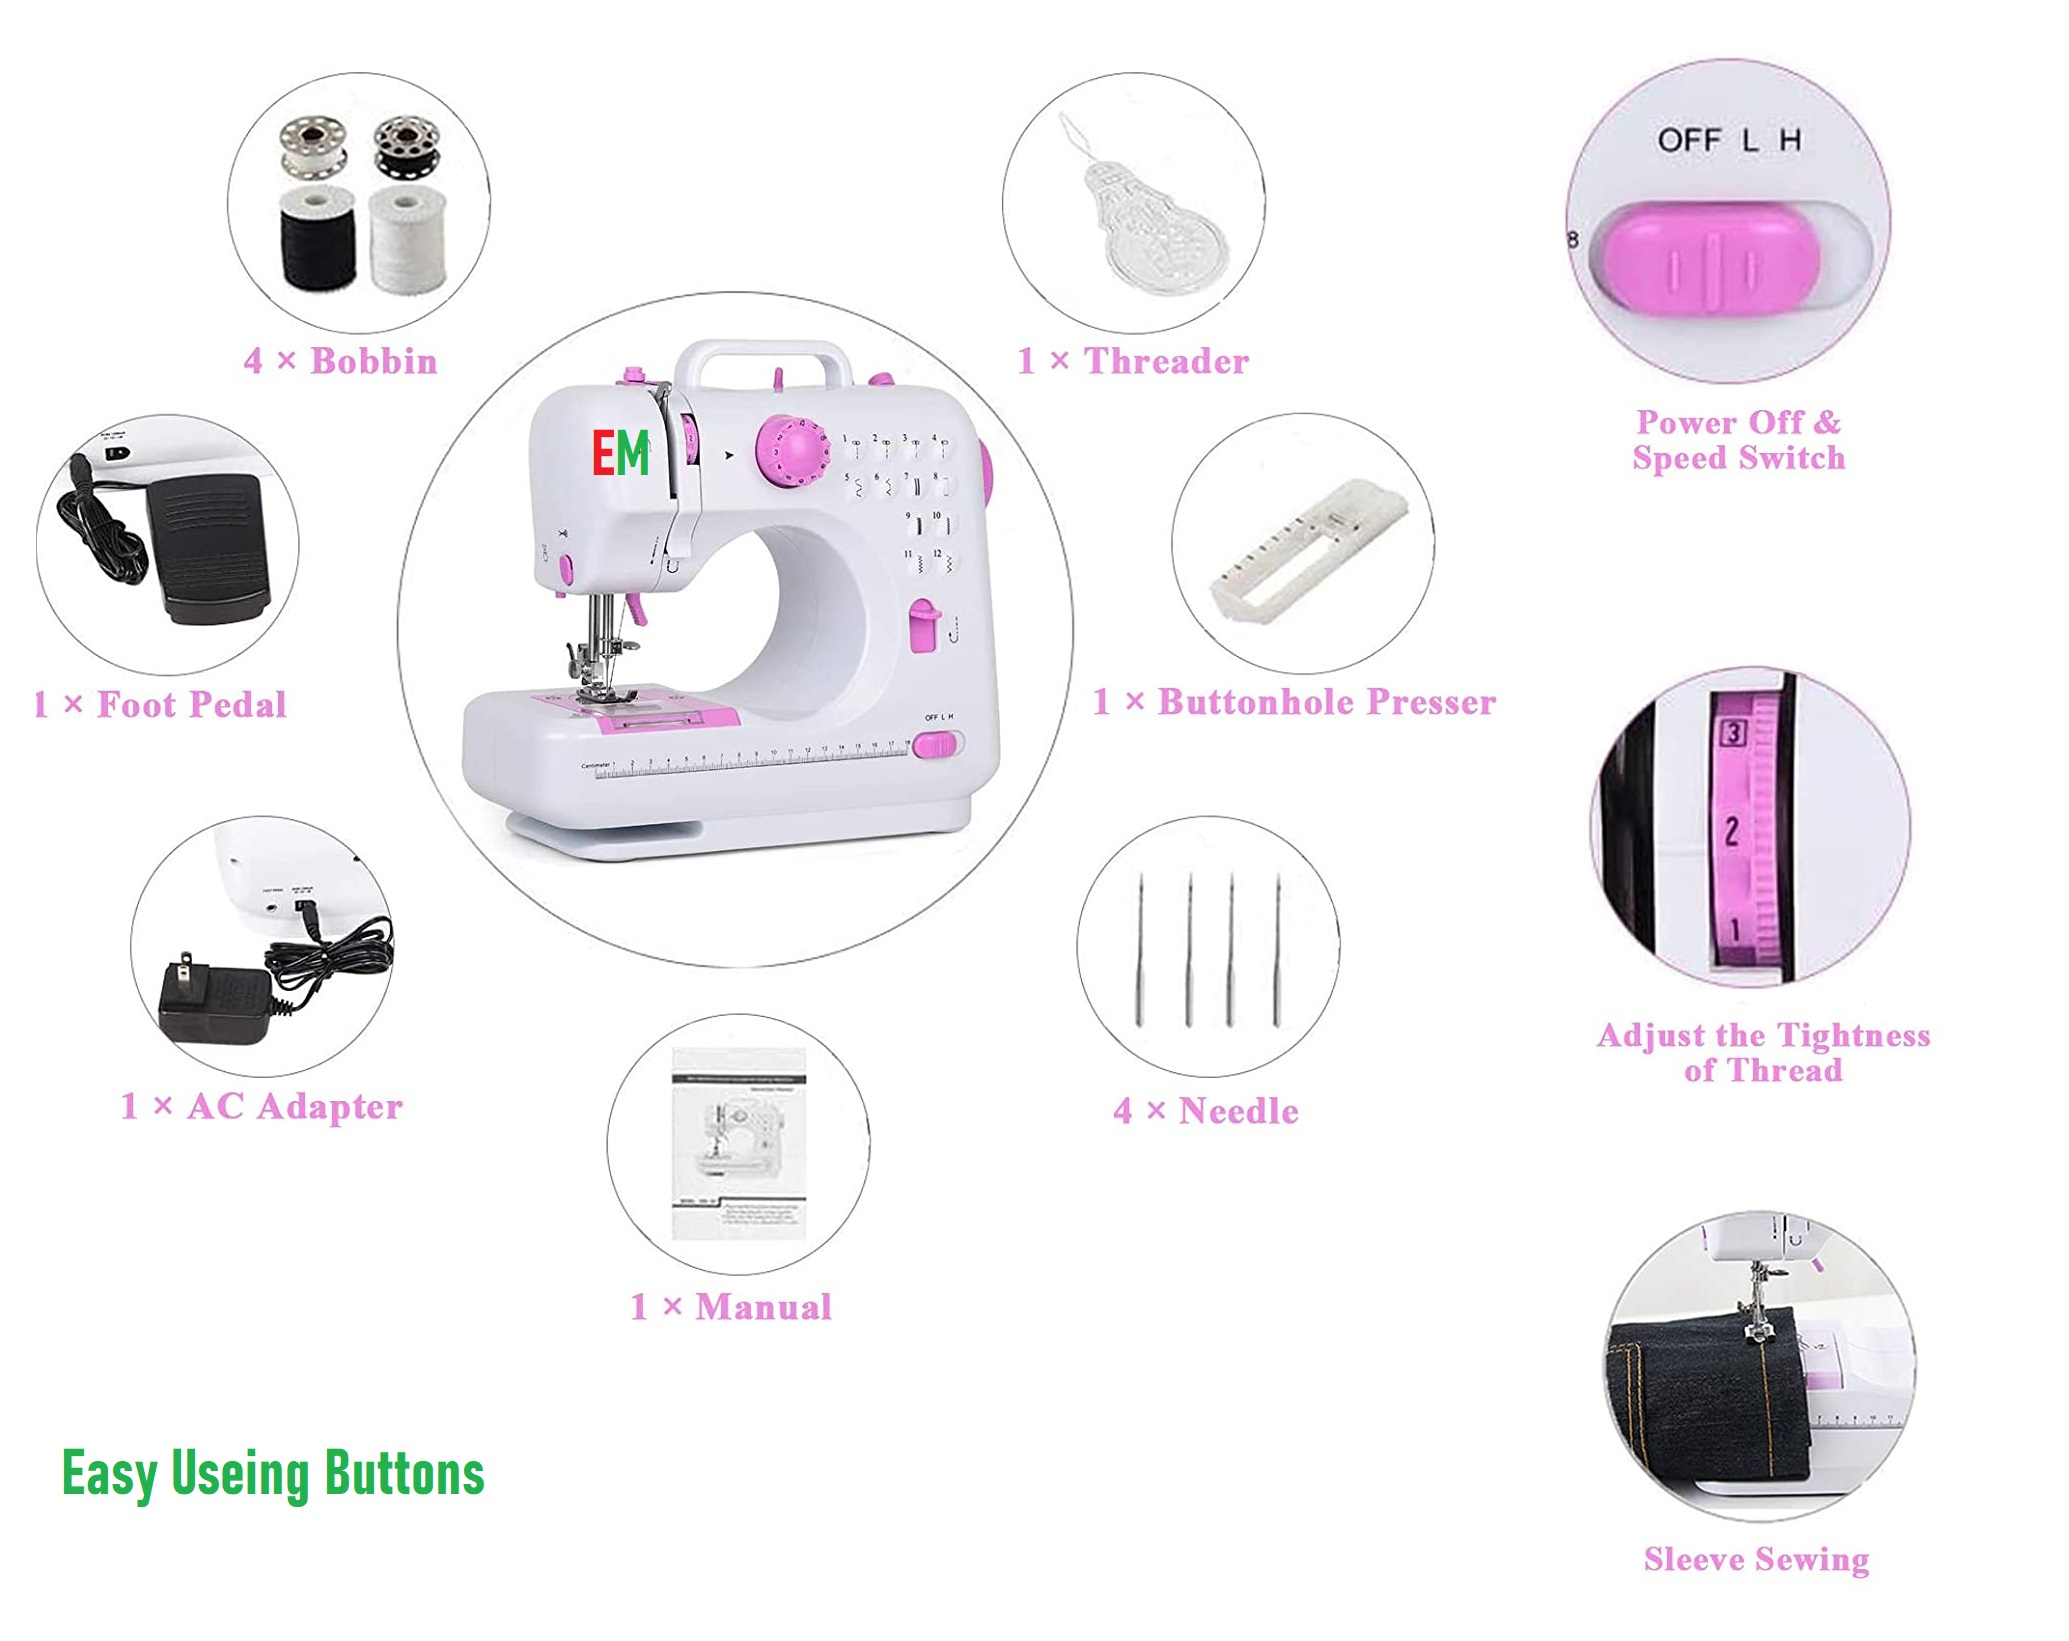 is-it-hard-to-learn-how-to-use-an-embroidery-machine